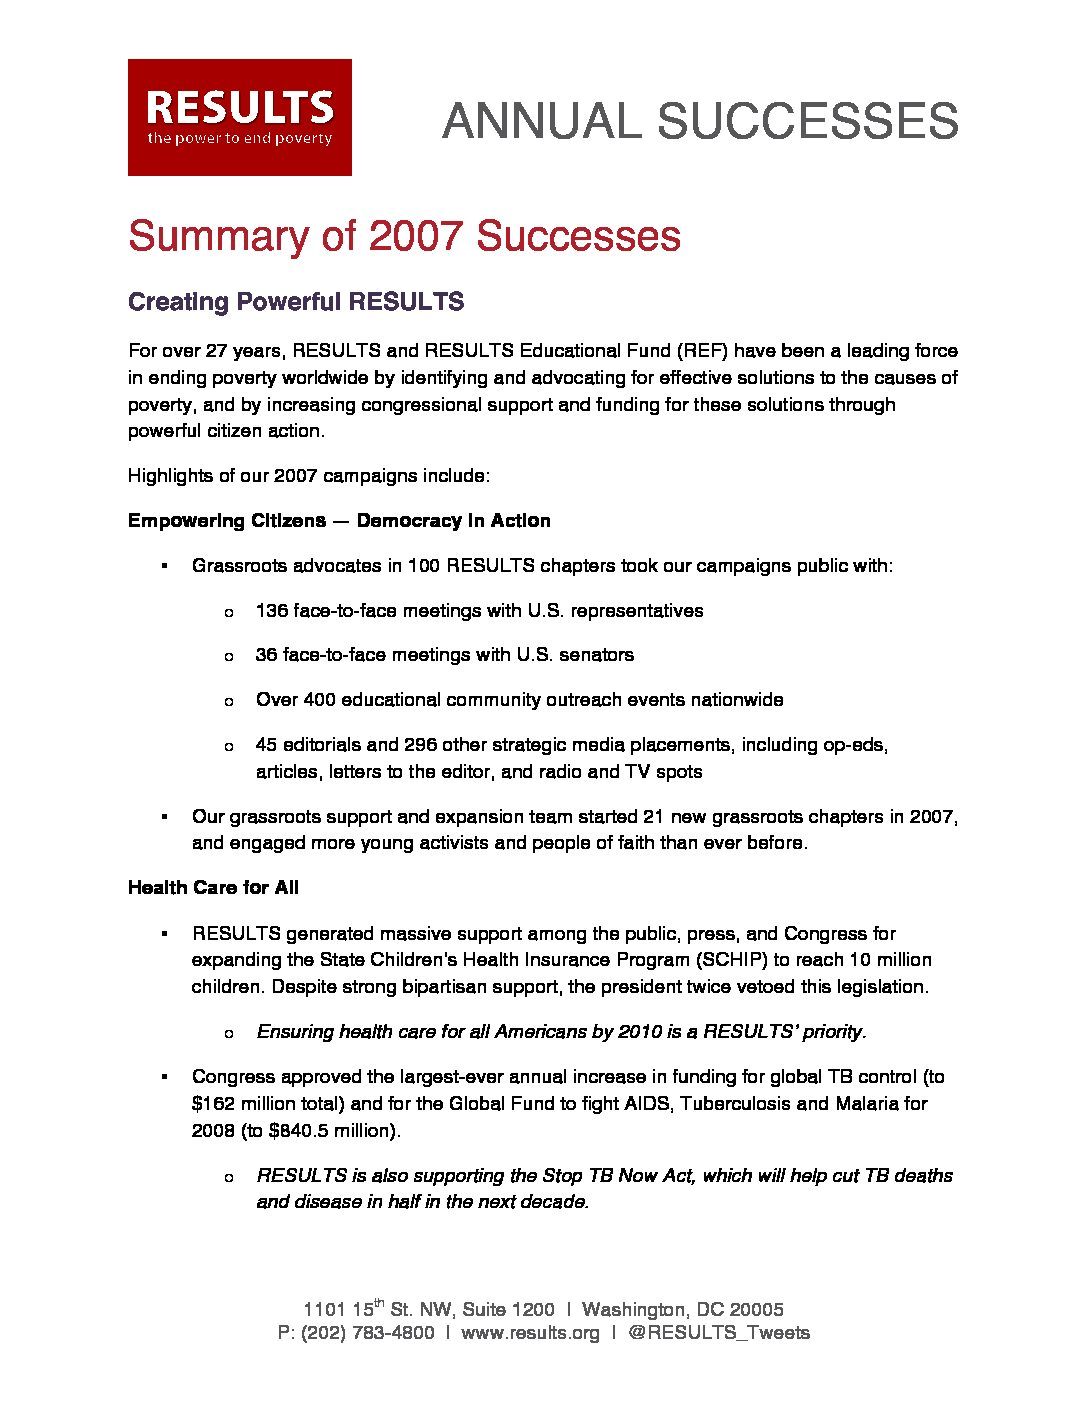 Annual Successes 2007